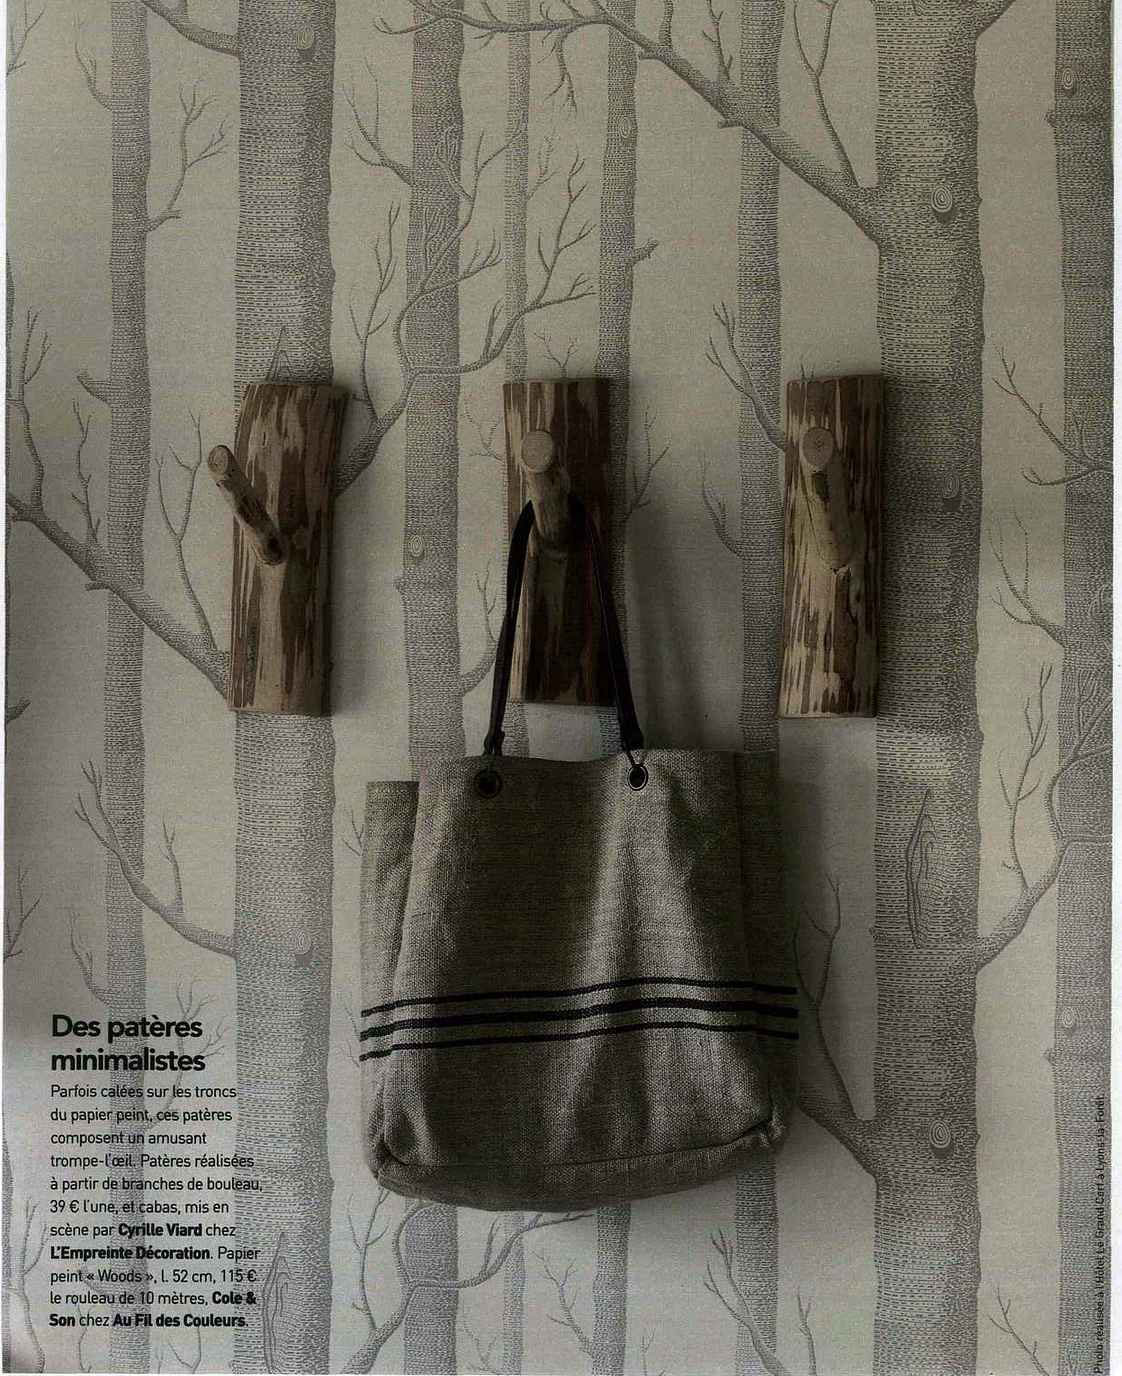 Papier peint Woods de Cole and Son dans le magazine Art&Décoration Octobre 2015